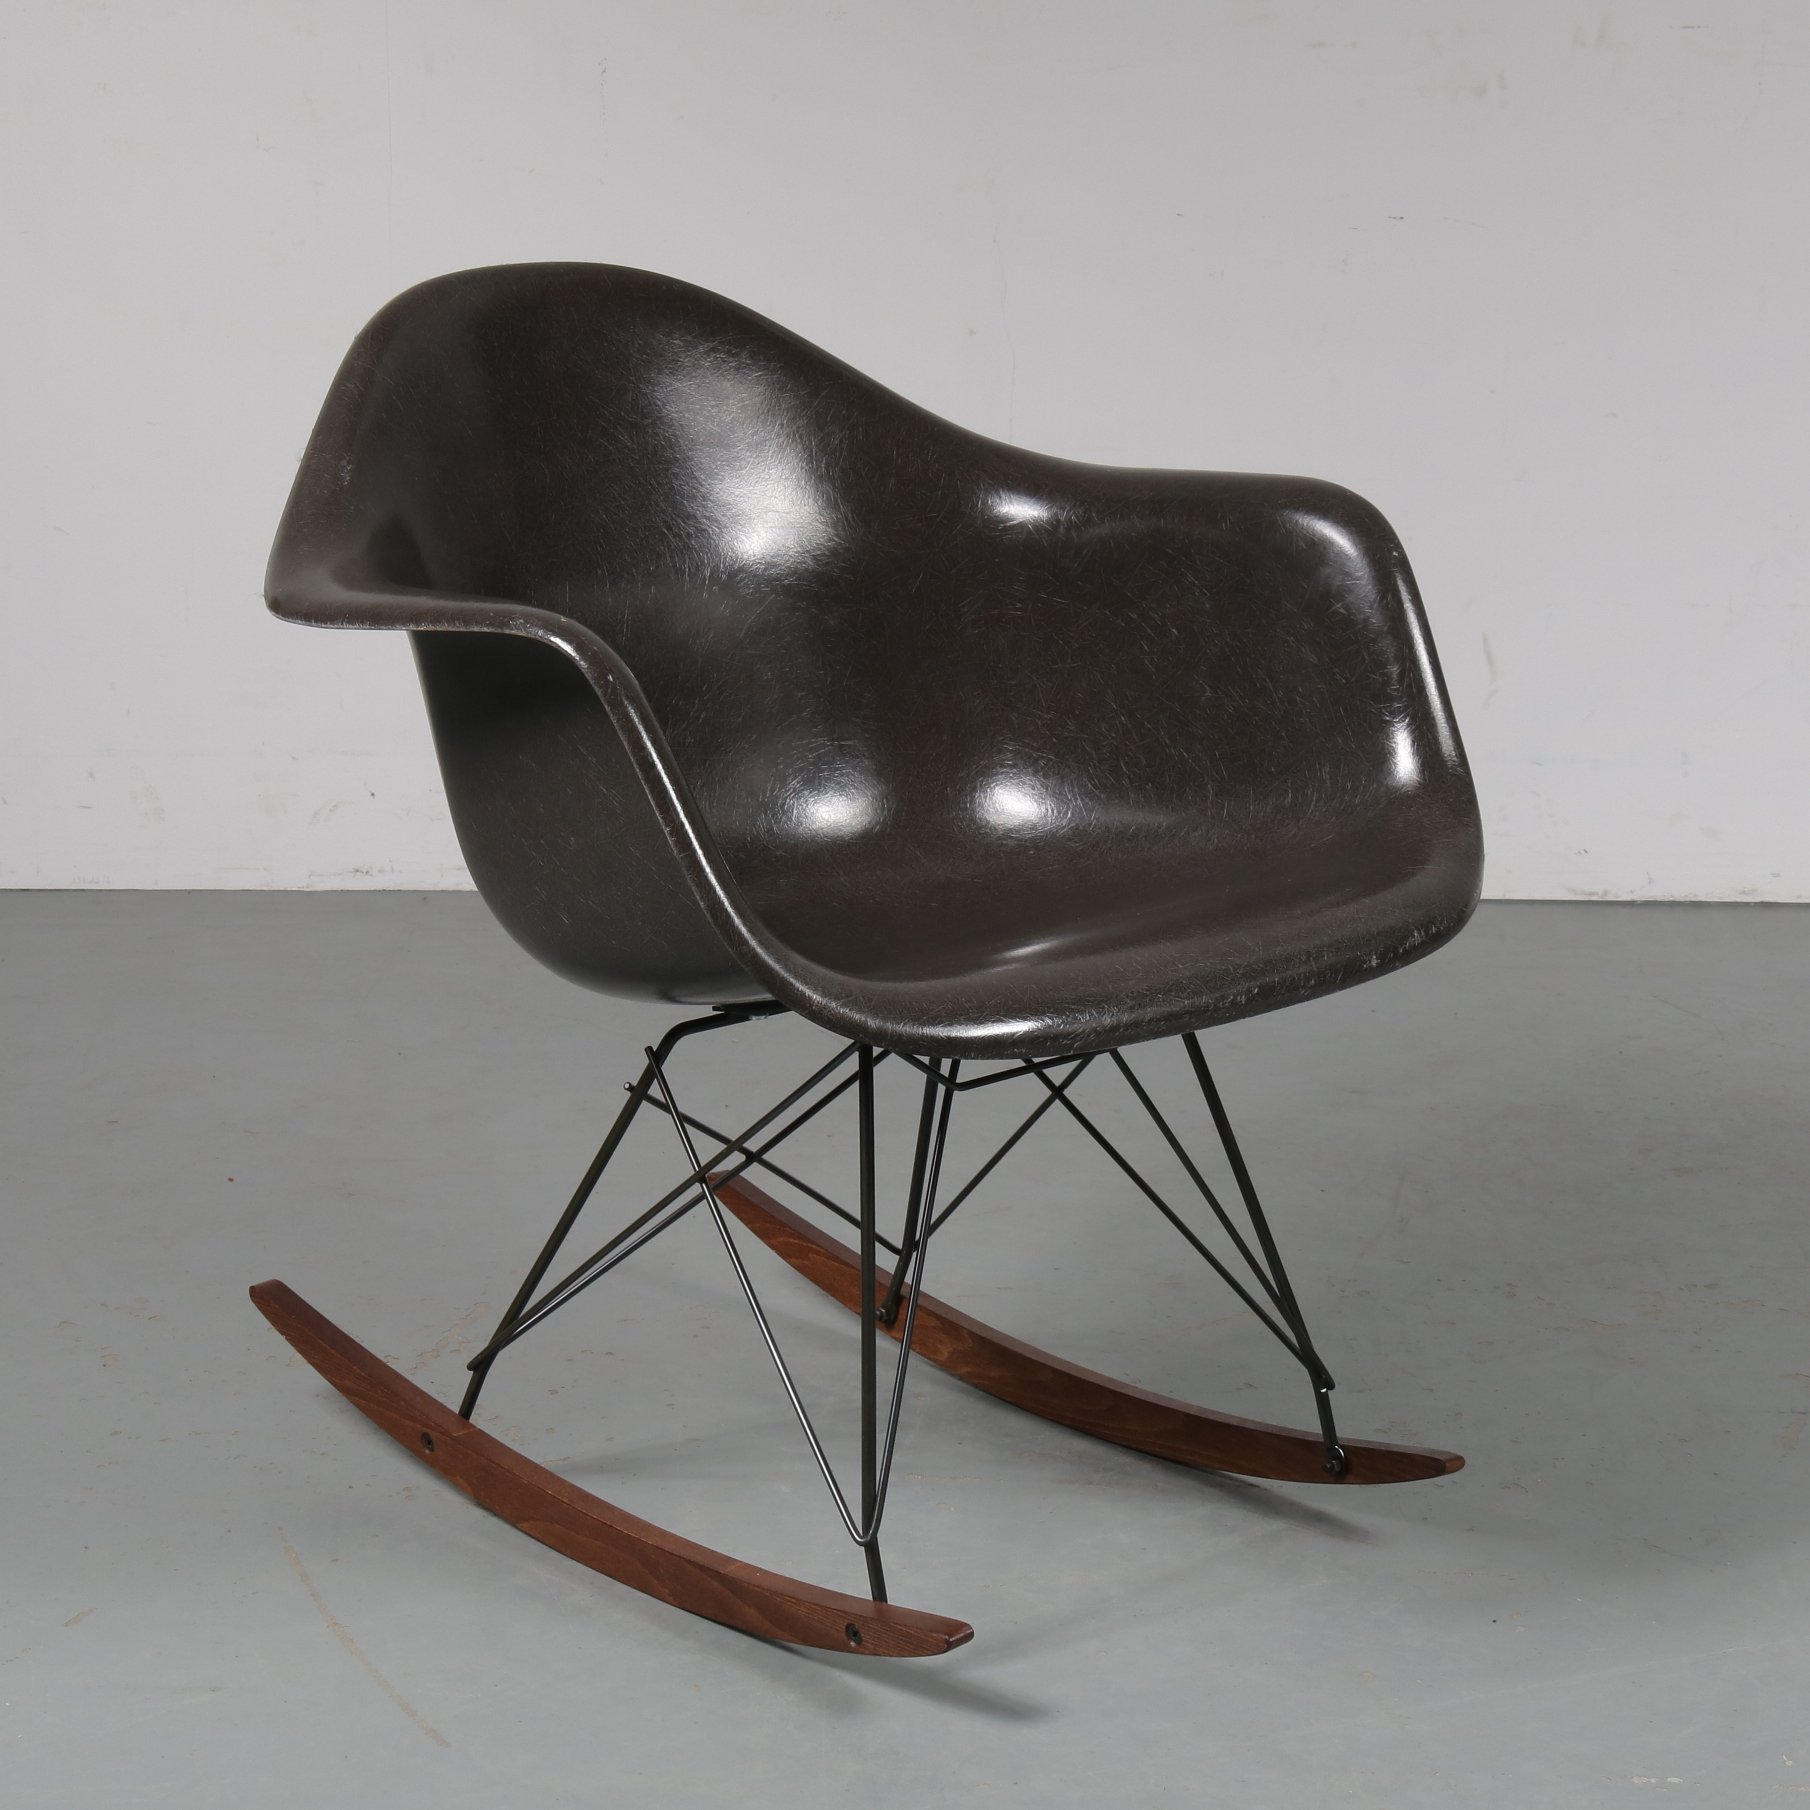 Astonishing Rar Rocking Chair By Charles Ray Eames For Vitra Germany 1960S Inzonedesignstudio Interior Chair Design Inzonedesignstudiocom